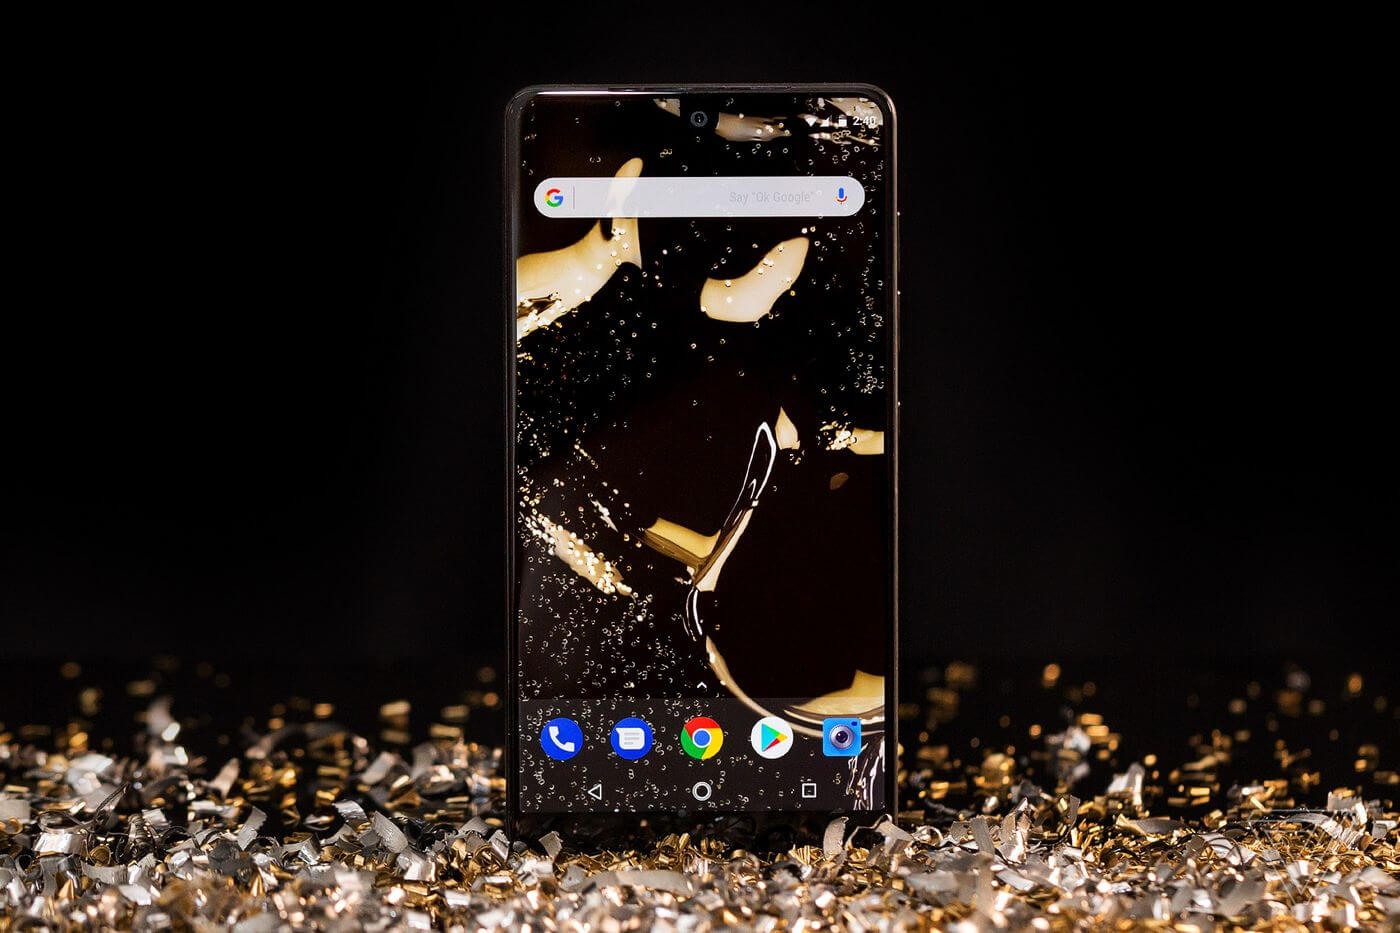 Essential, Andy Rubin's smartphone startup, is now dead